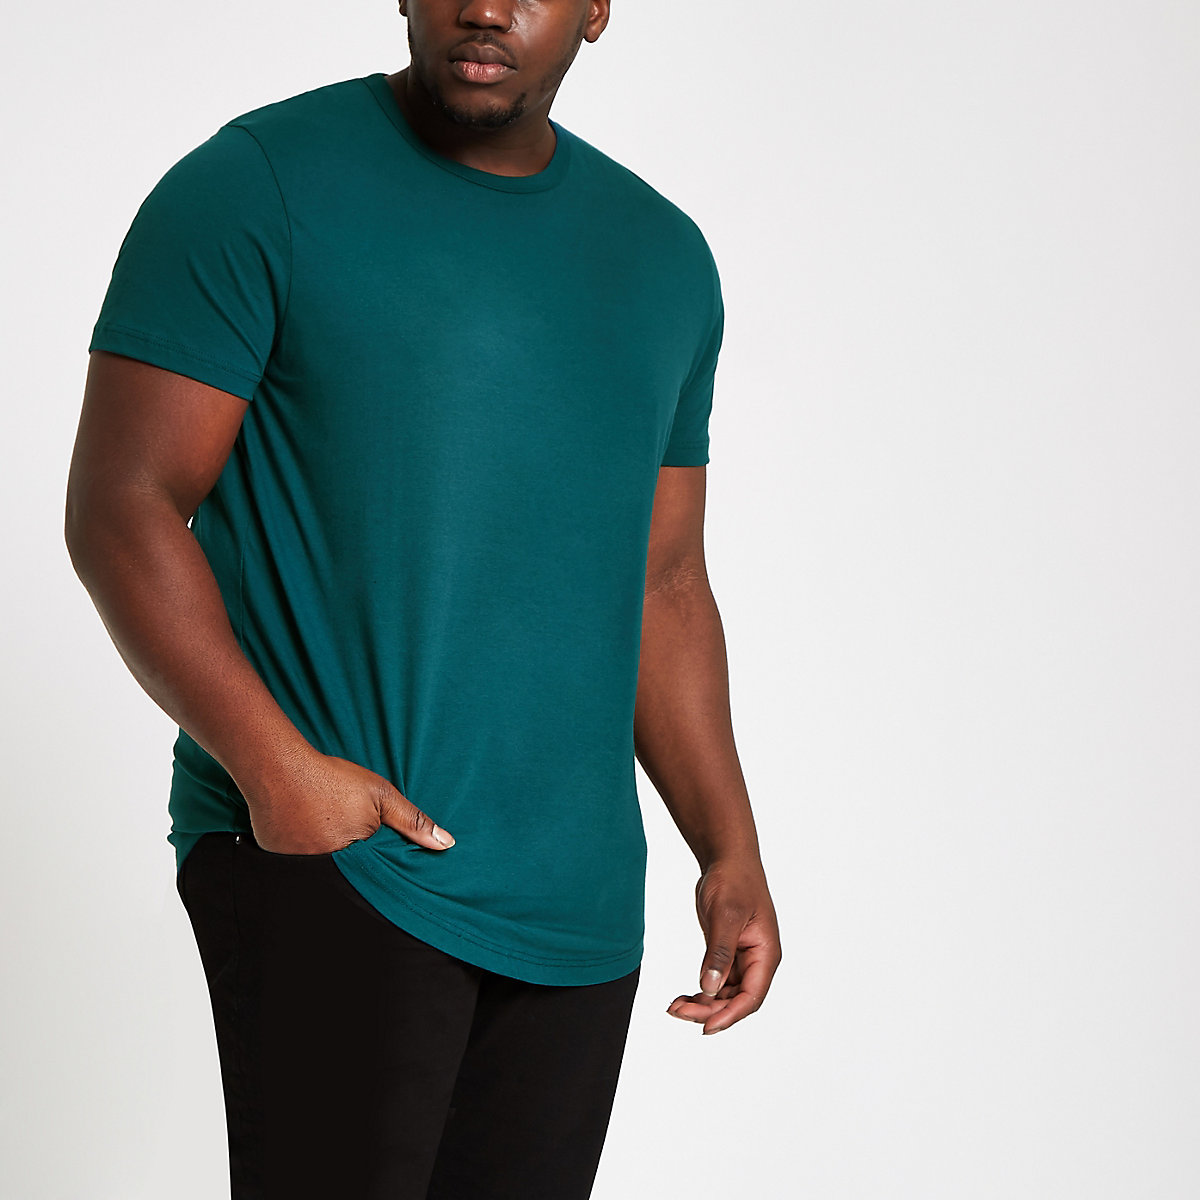 Big & Tall – T-Shirt in Türkis mit abgerundetem Saum